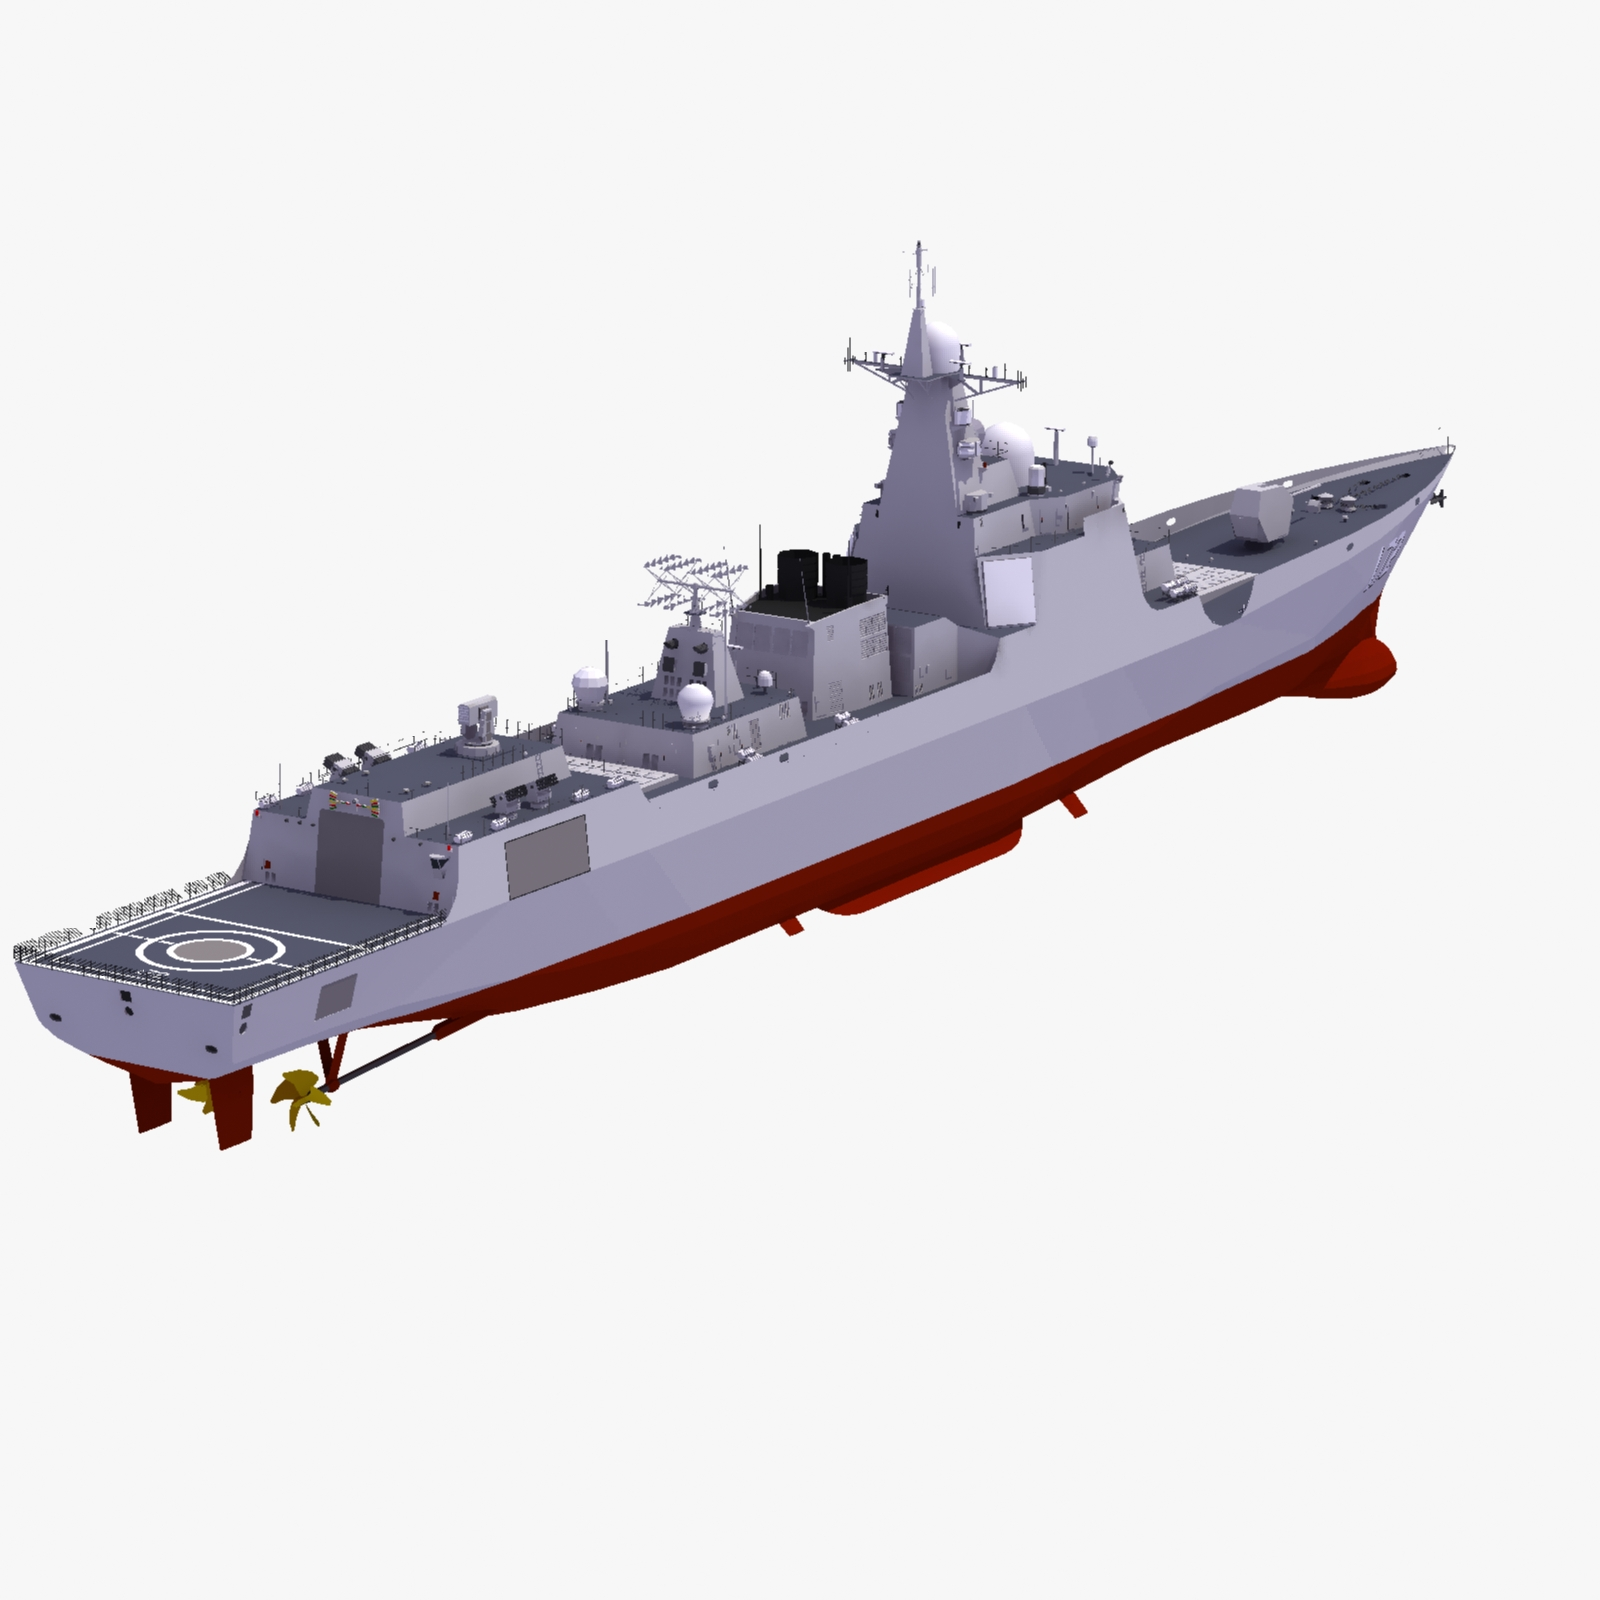 Male Anatomy Ecorche additionally Chinese Ddg 052d Destroyer 2 as well Satyr 3 together with Eucalyptus Baby Blue together with Lykan Hypersport 3d Model. on obj car models